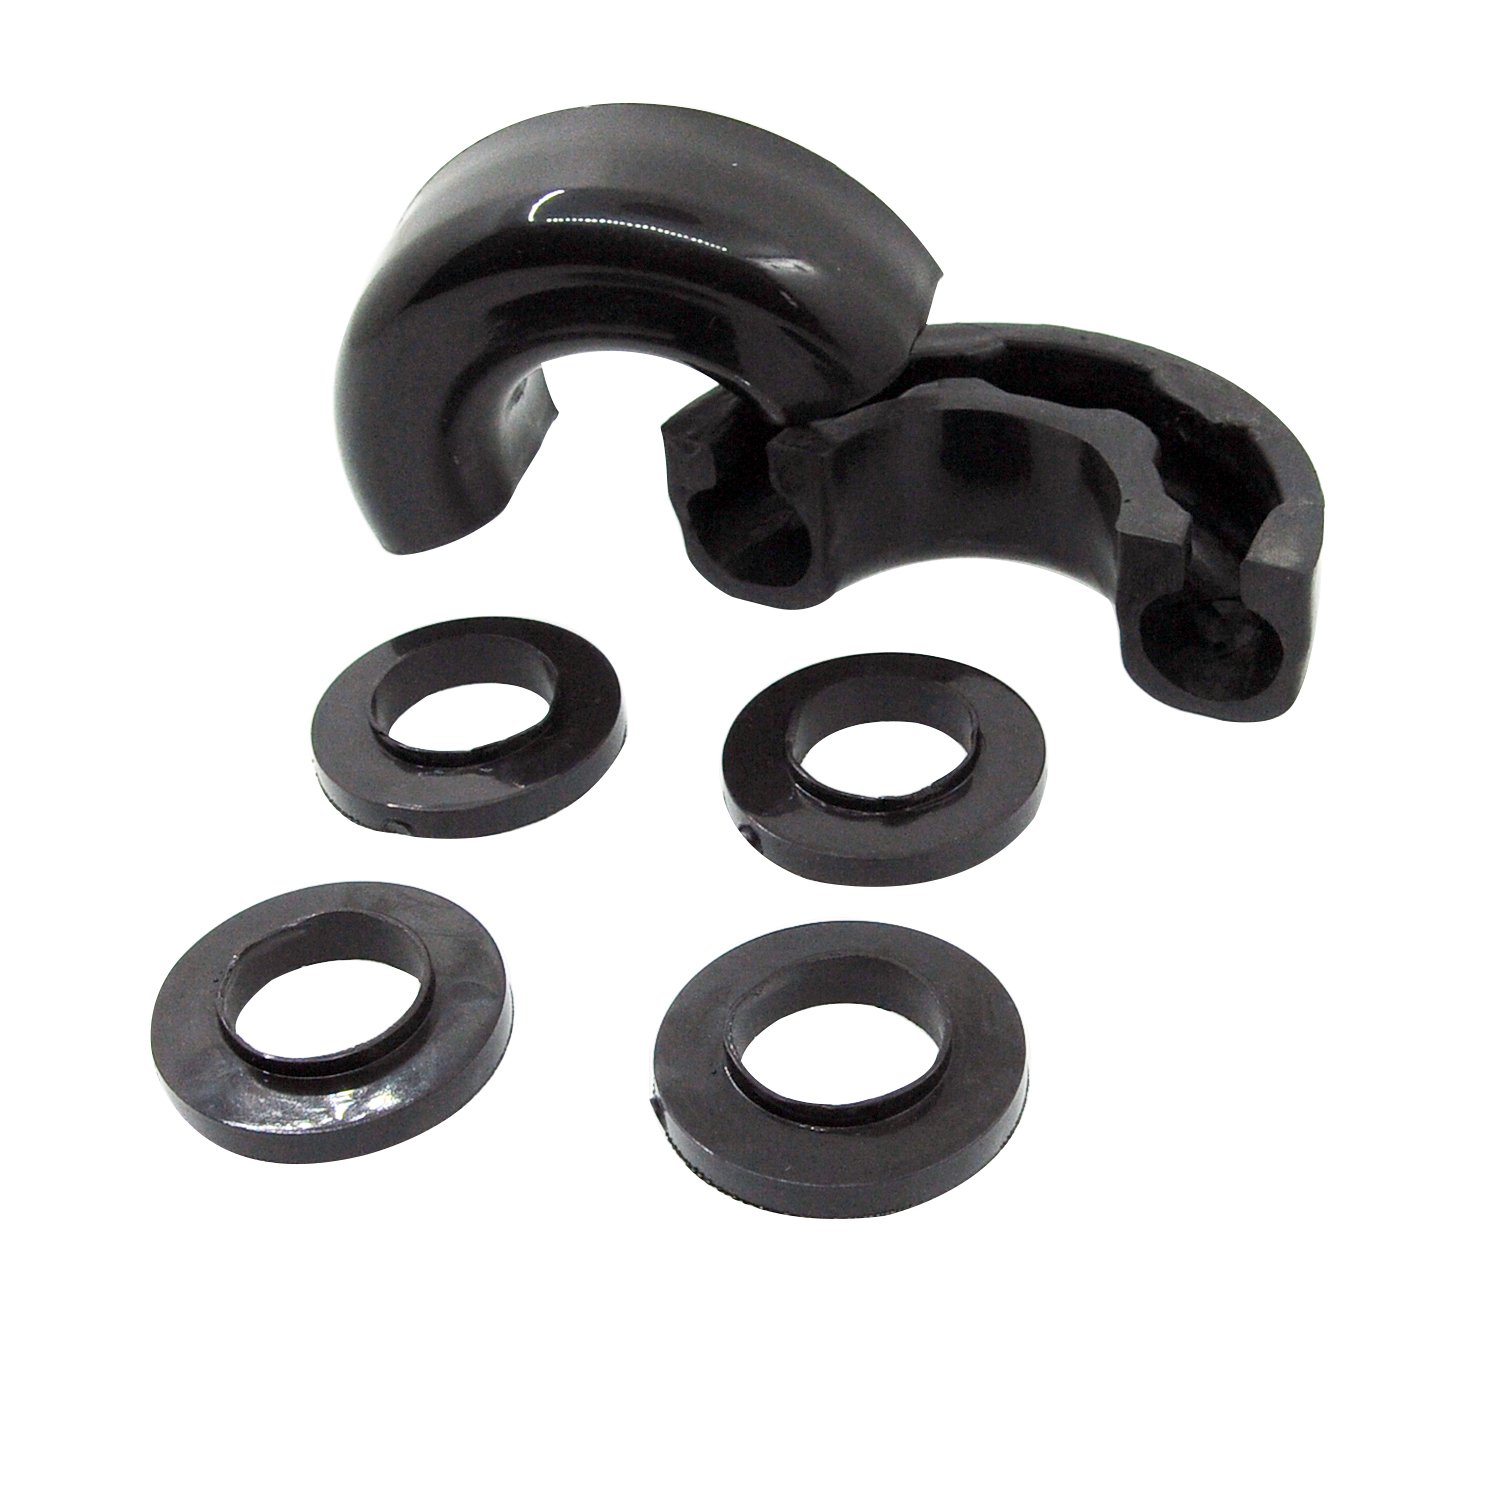 E-Autogrilles Pair Black Isolator Fits 3/4 inch Tow D-rings - Includes 2 Rubber Isolators and 4 Washers - Shackle Isolator Clevis Kit (51-0515B)